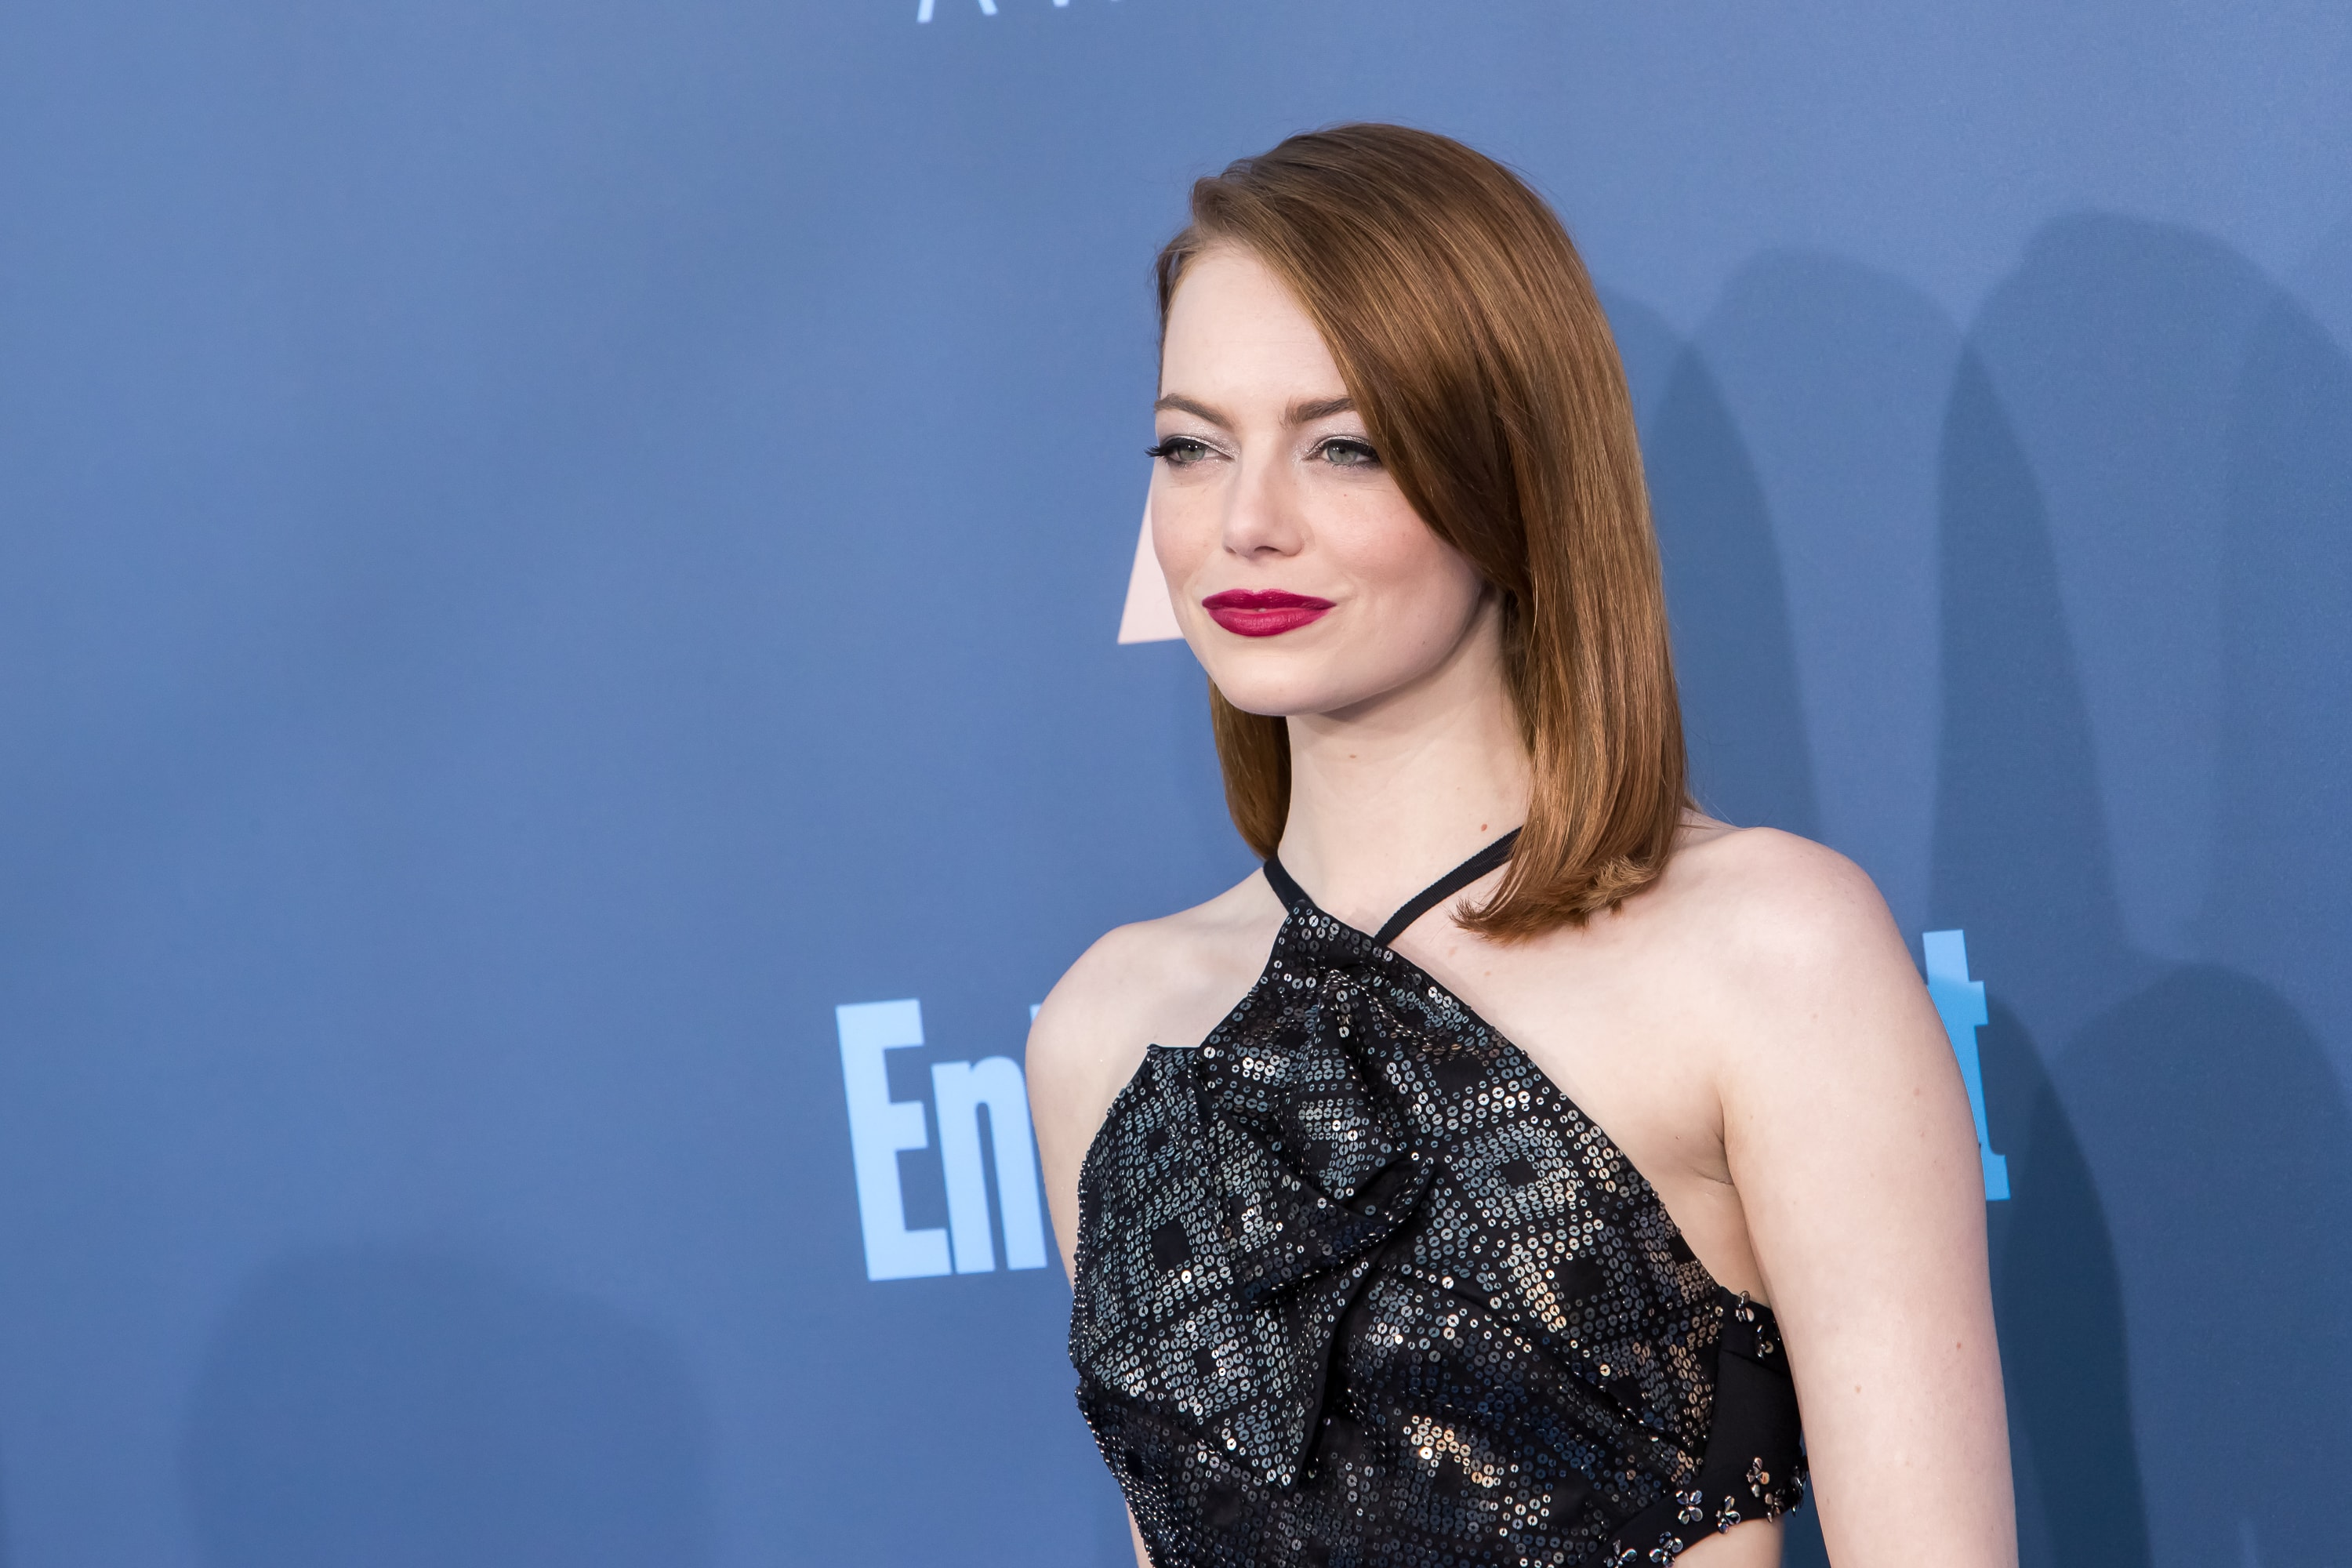 Celebrating her 29th birthday, here are Emma Stone's best red carpet looks of 2017. (Photo: WENN)